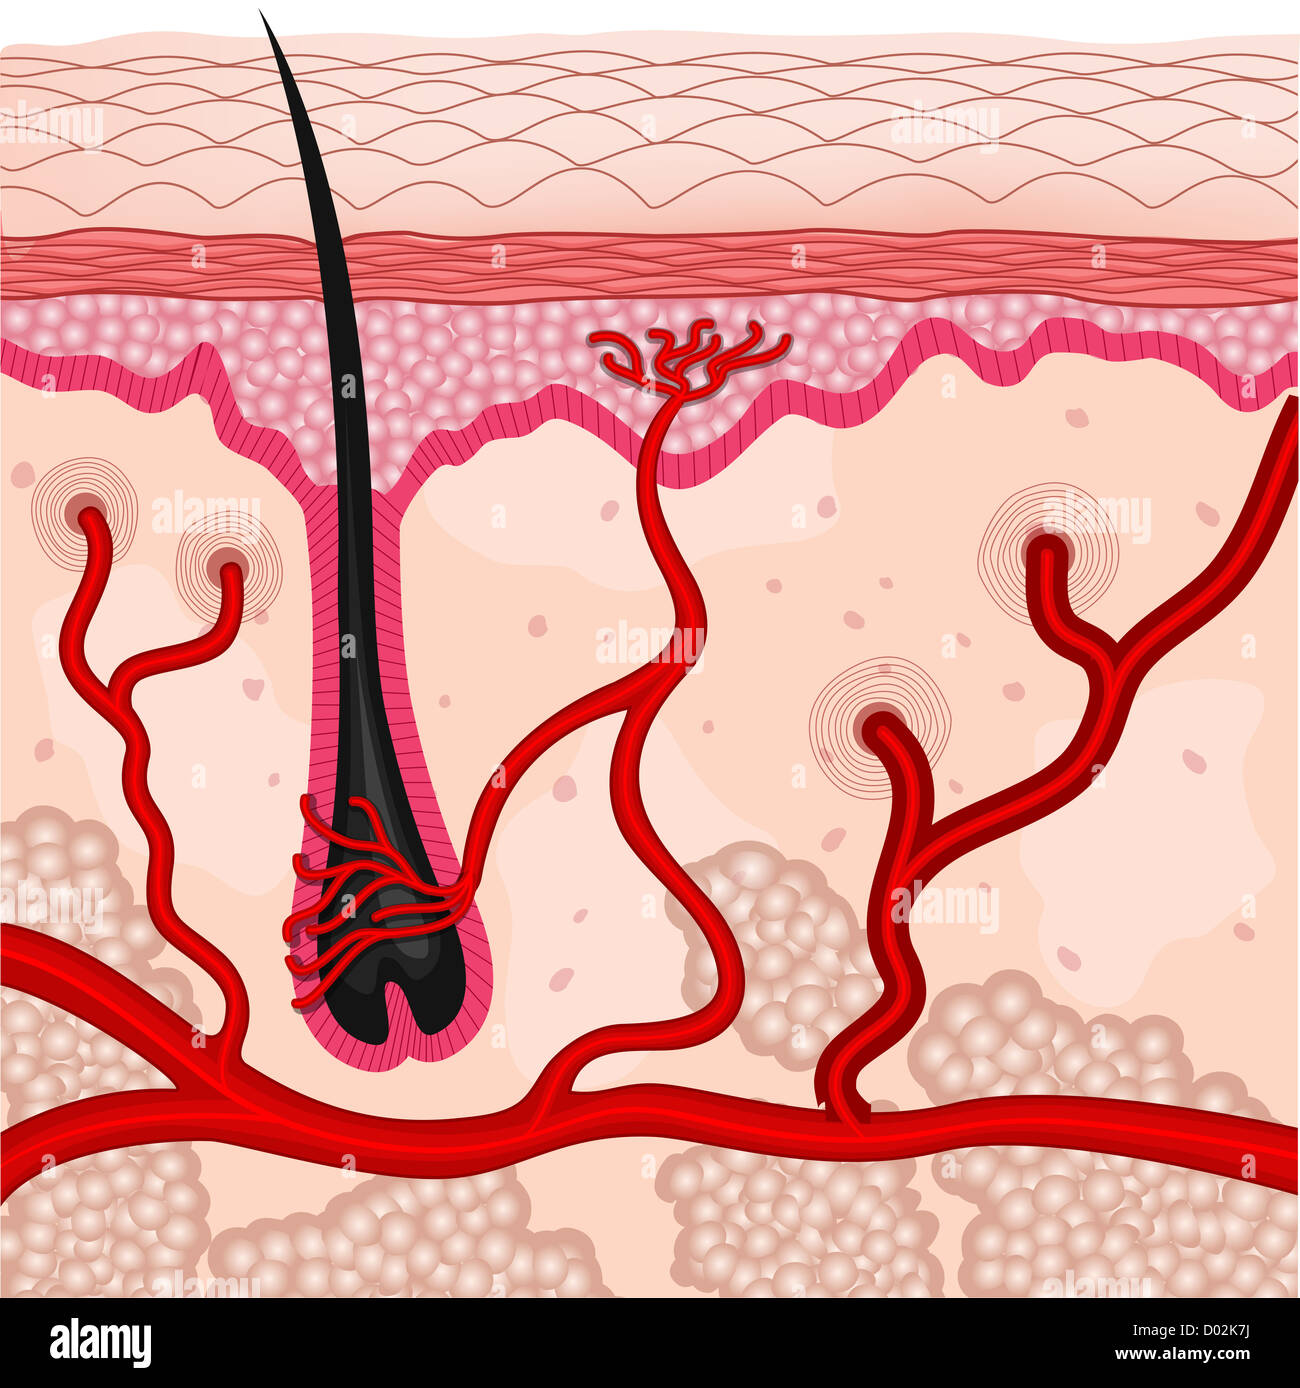 illustration of human skin cells - Stock Image